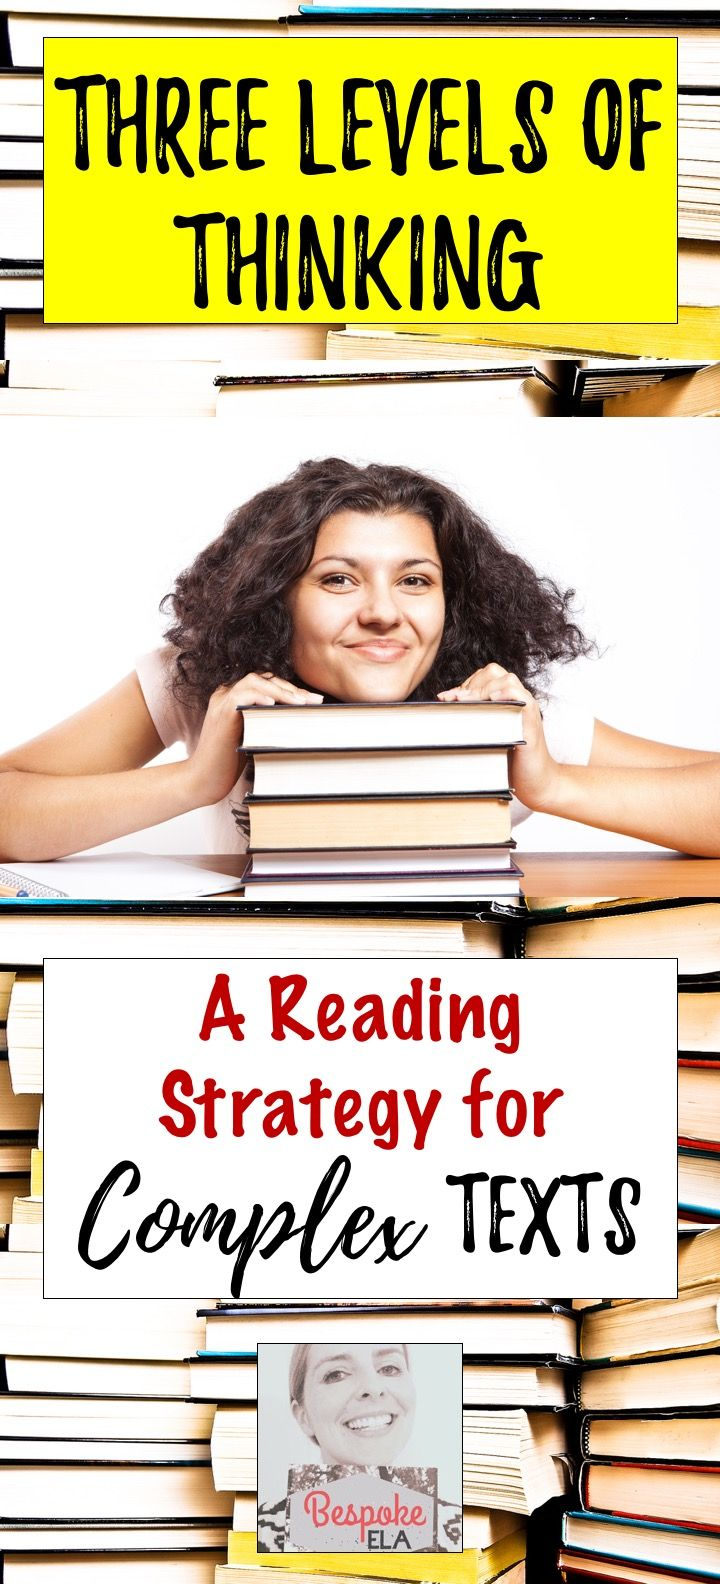 This blog article by Bespoke ELA discusses a reading strategy for helping students comprehend complex texts. The Three Levels of Thinking involves paraphrasing, making observations, making associations and connections, and analyzing rhetorical relationships. It is a cornerstone of my teaching philosophy, and I hope you find it useful!